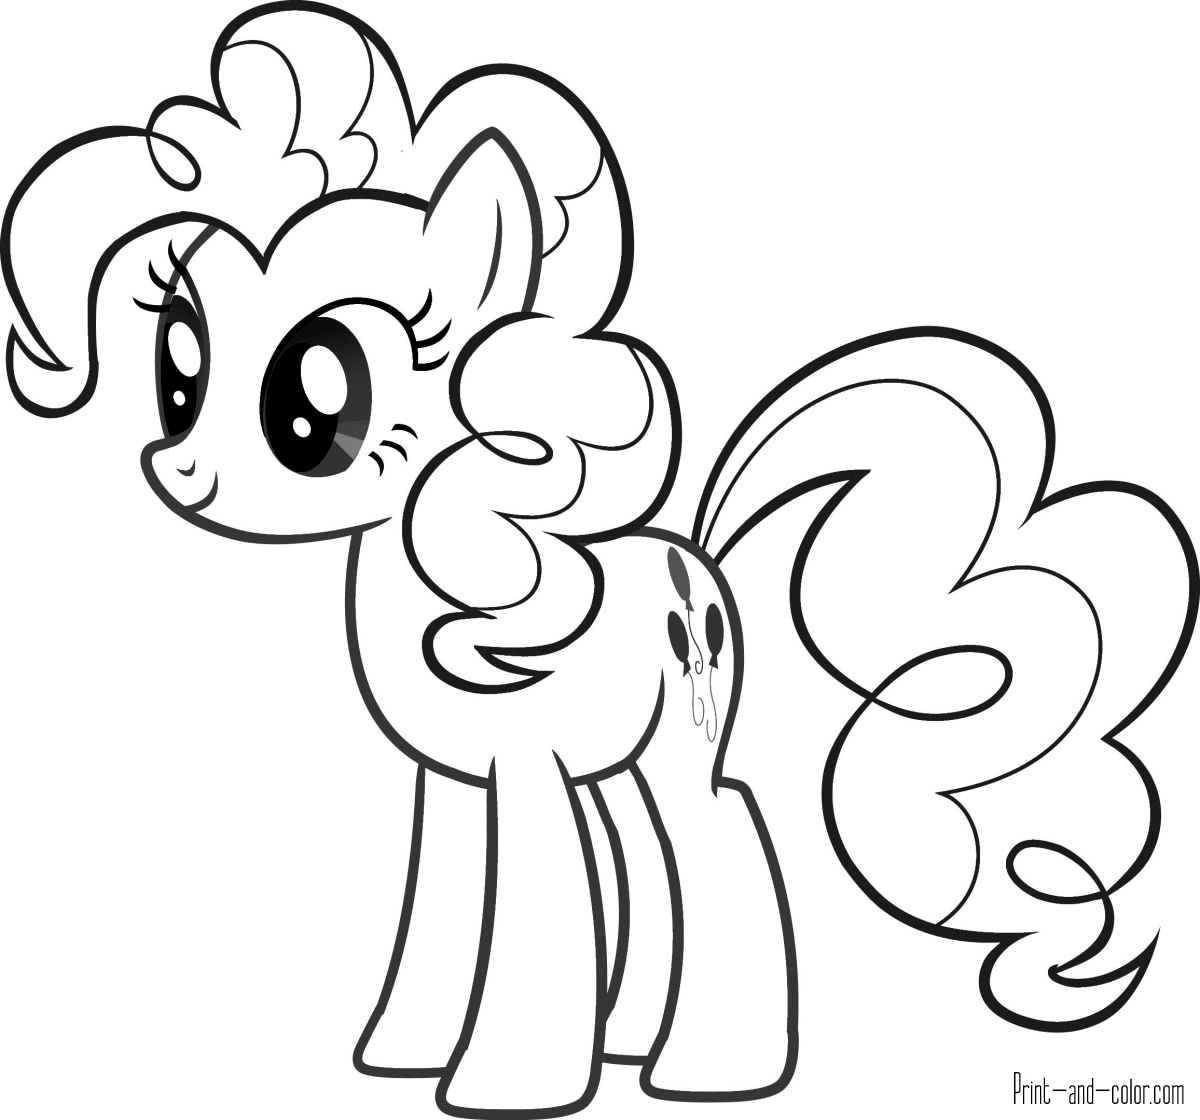 mlp coloring book free printable my little pony coloring pages for kids coloring book mlp